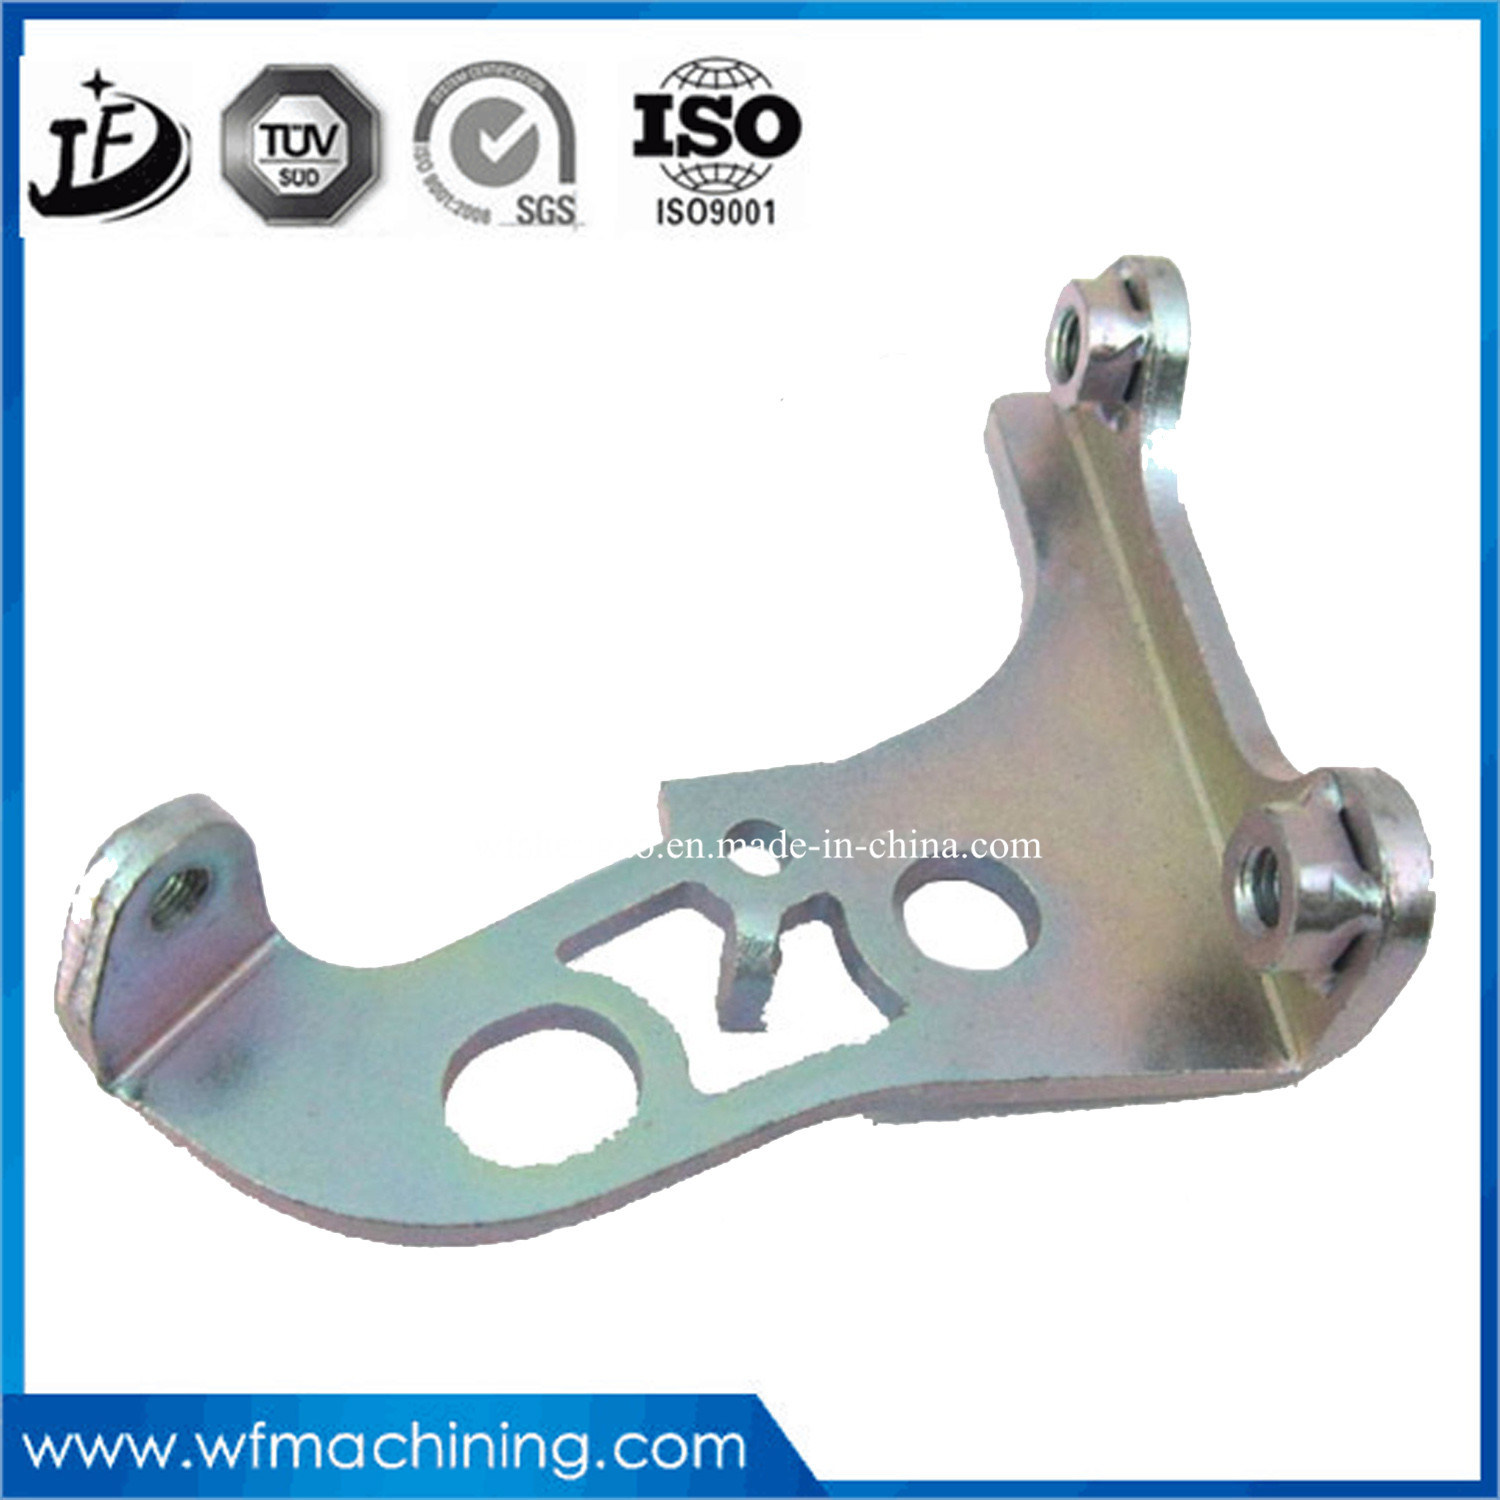 Customized Non-Standard Stamping Die Machinery Part of Sheet Metal Processing